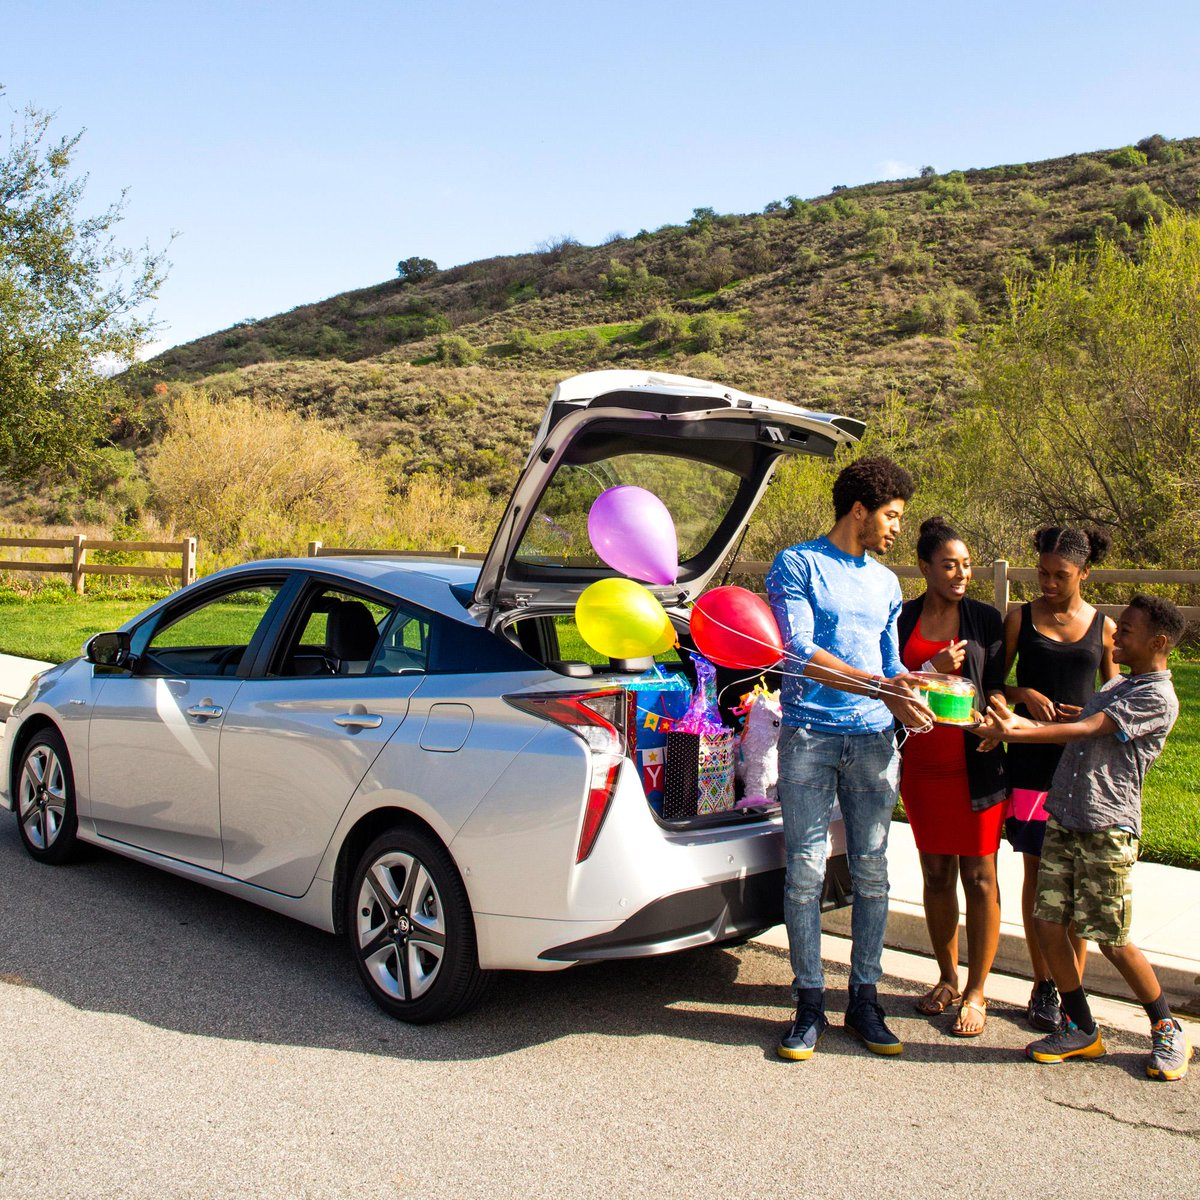 test Twitter Media - This one's for all of our Toyota dads. #HappyFathersDay https://t.co/9yA0XFqyTa